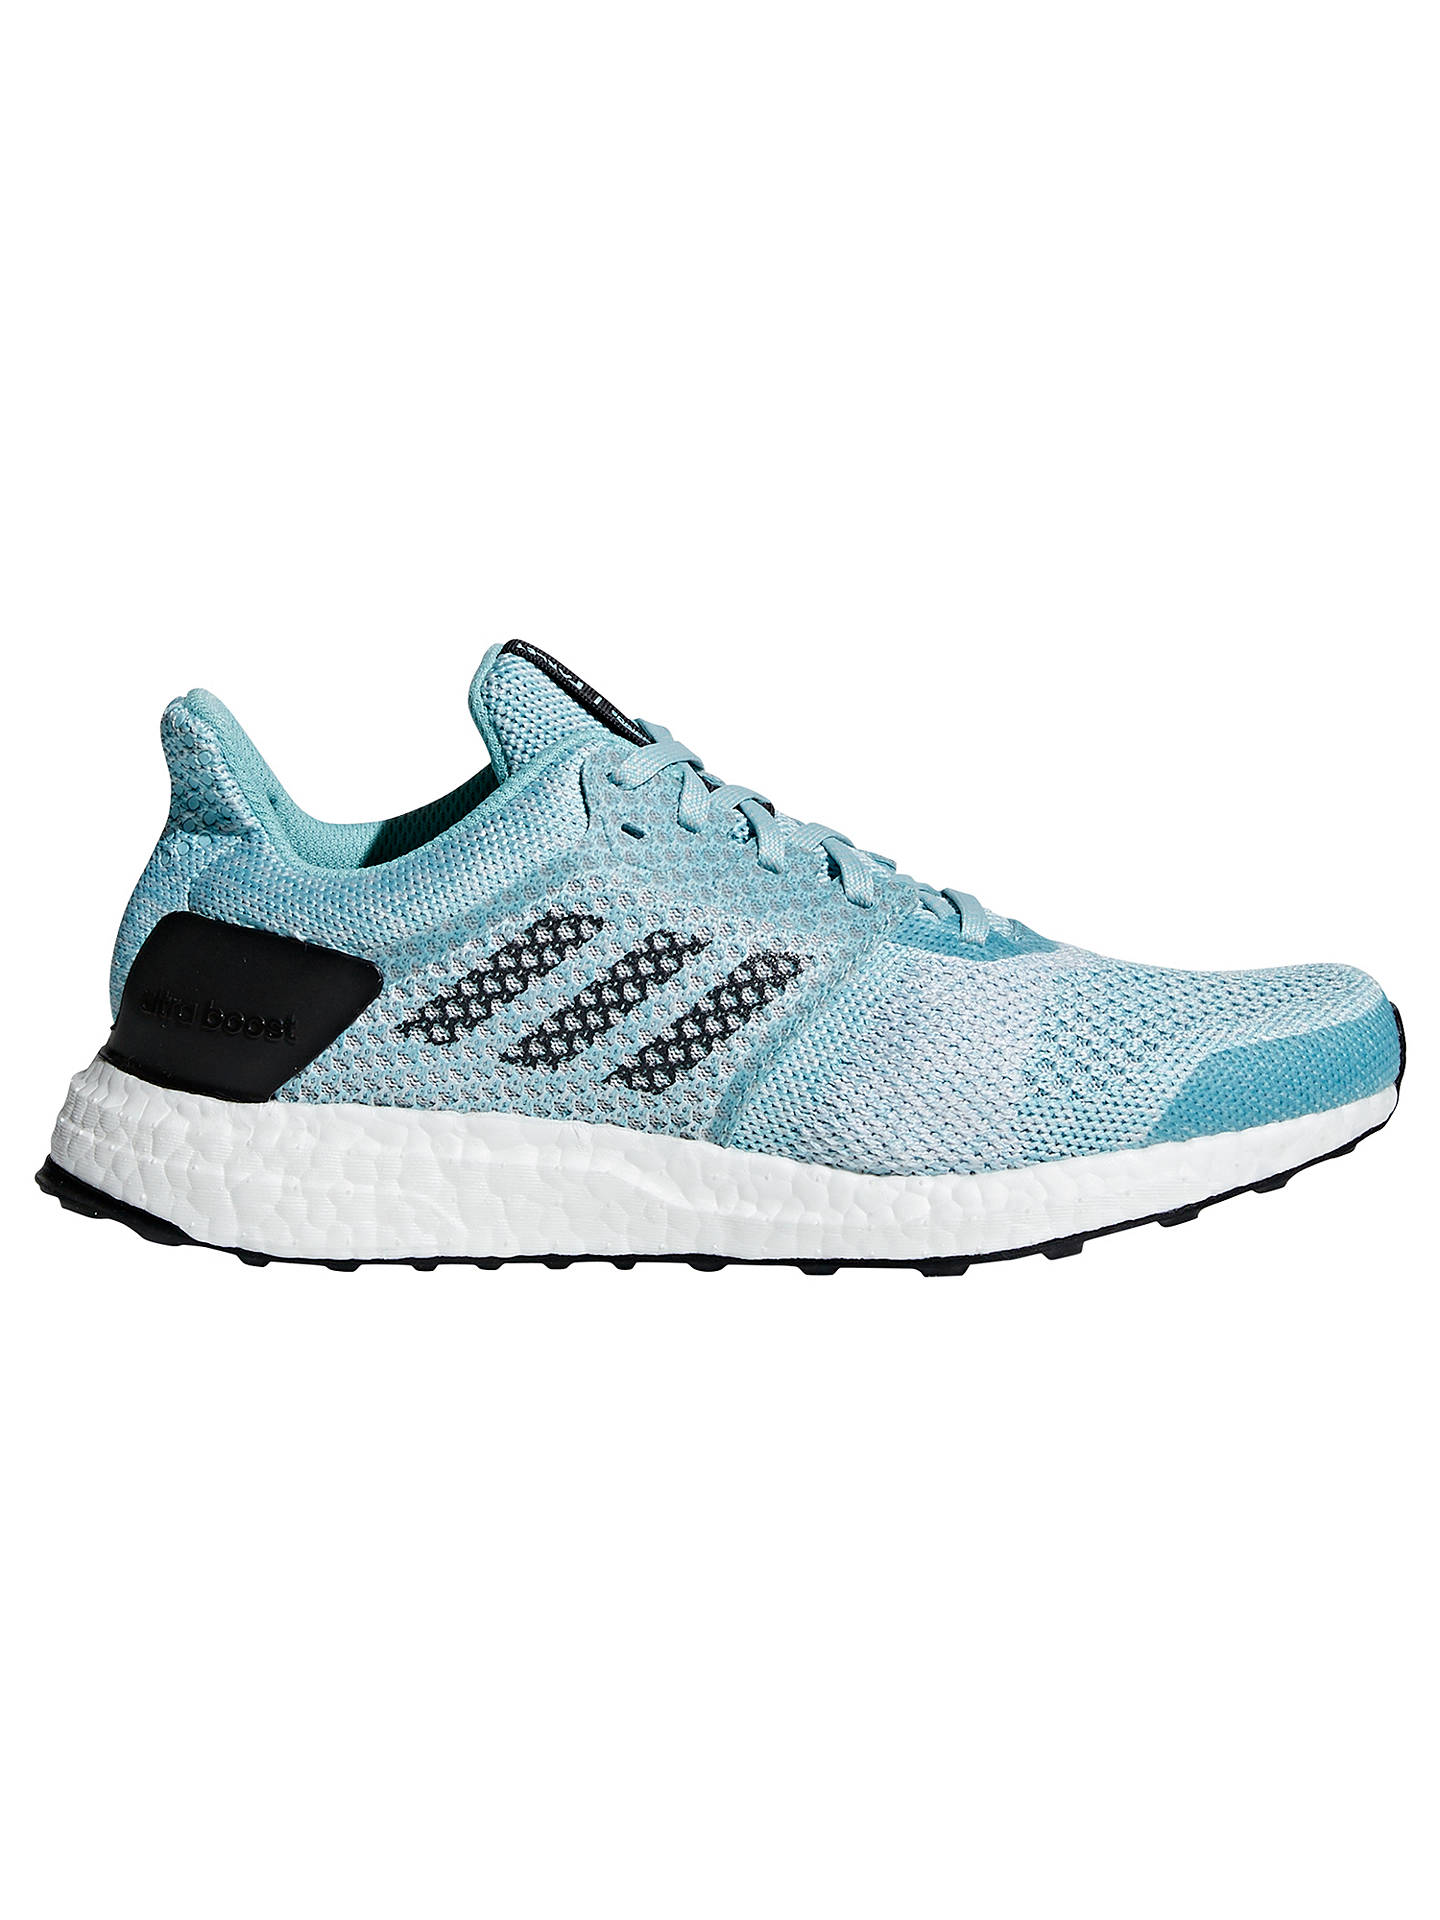 d9885c69075 Buy adidas UltraBOOST ST Women s Running Shoes